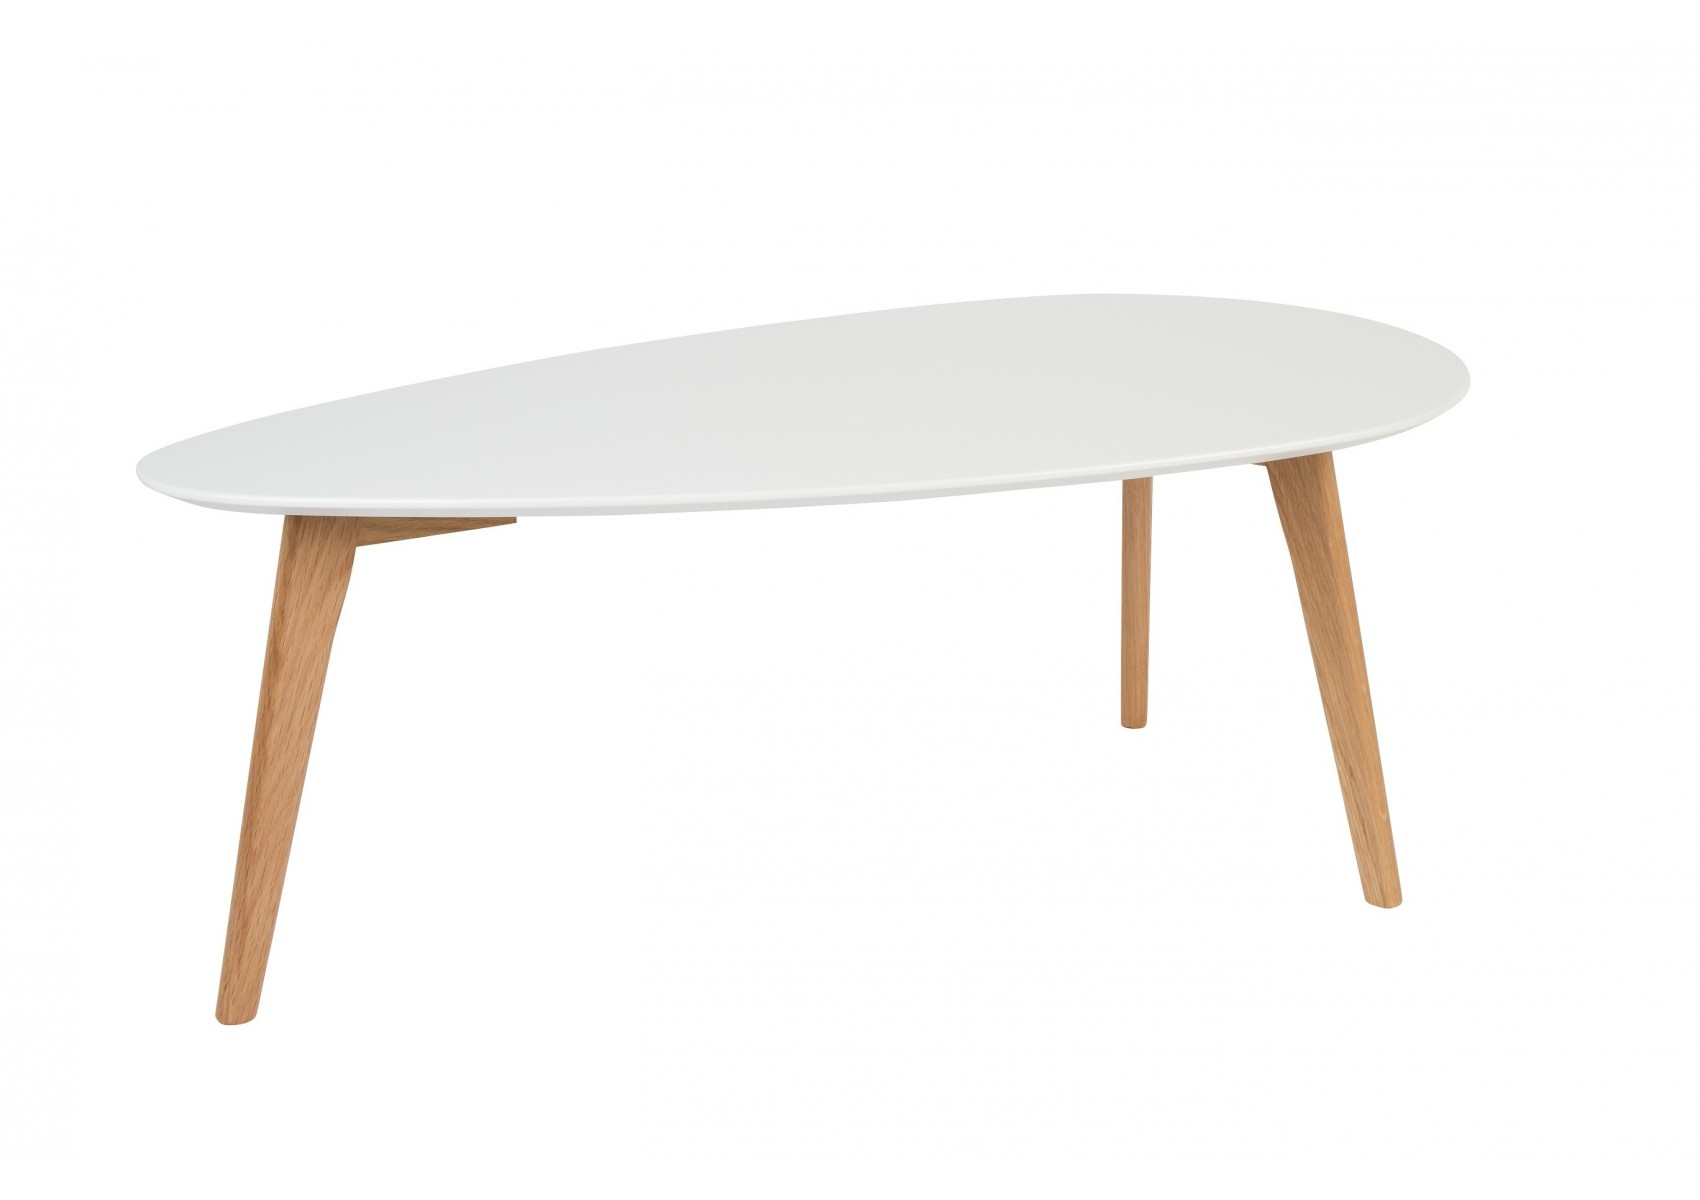 Tables basse scandinave drop laqu e blanche - Table basse scandinave blanche ...